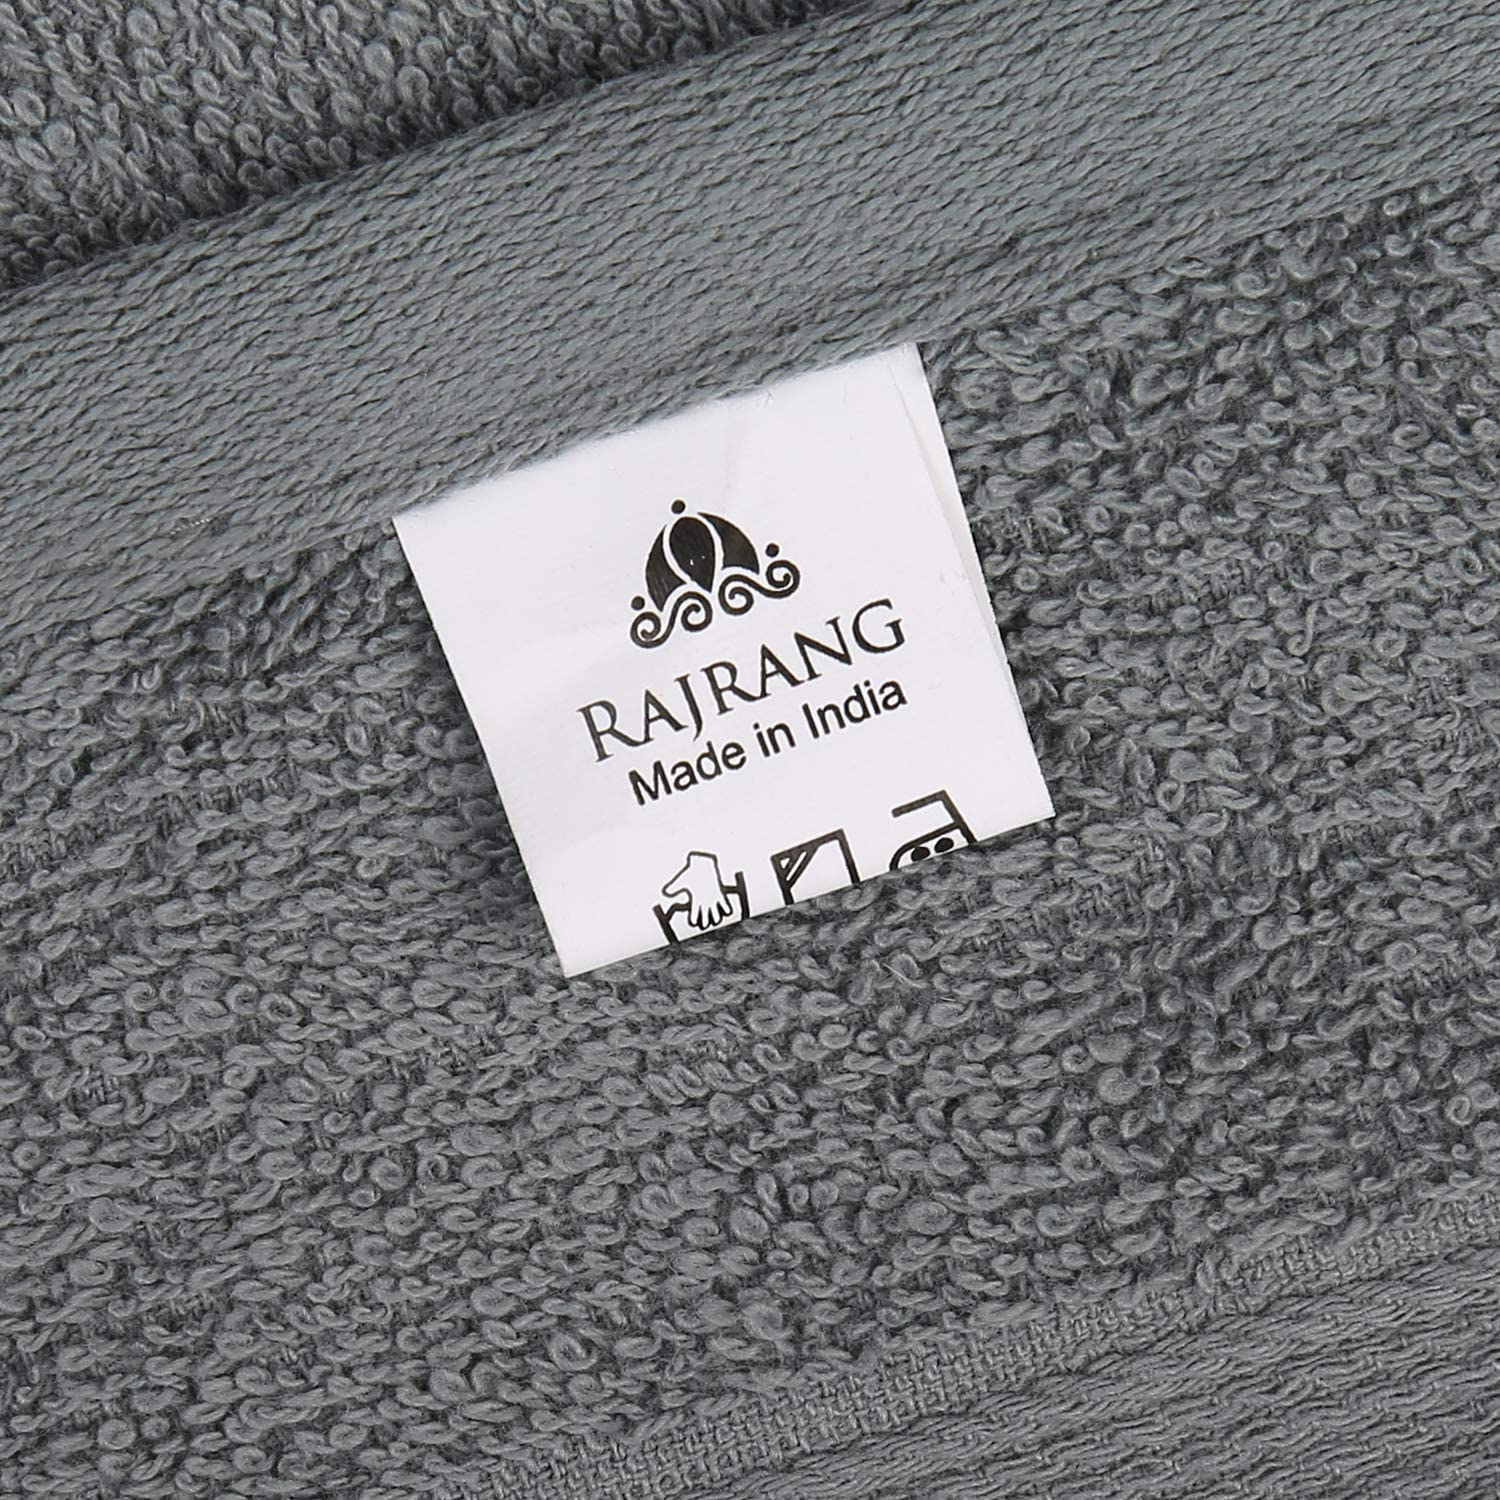 100/% Cotton Luxurious Daily Use Towels for Bathroom and Kitchen Gray Pack of 2 16x28 Inches Soft Extra Large Hand Towels